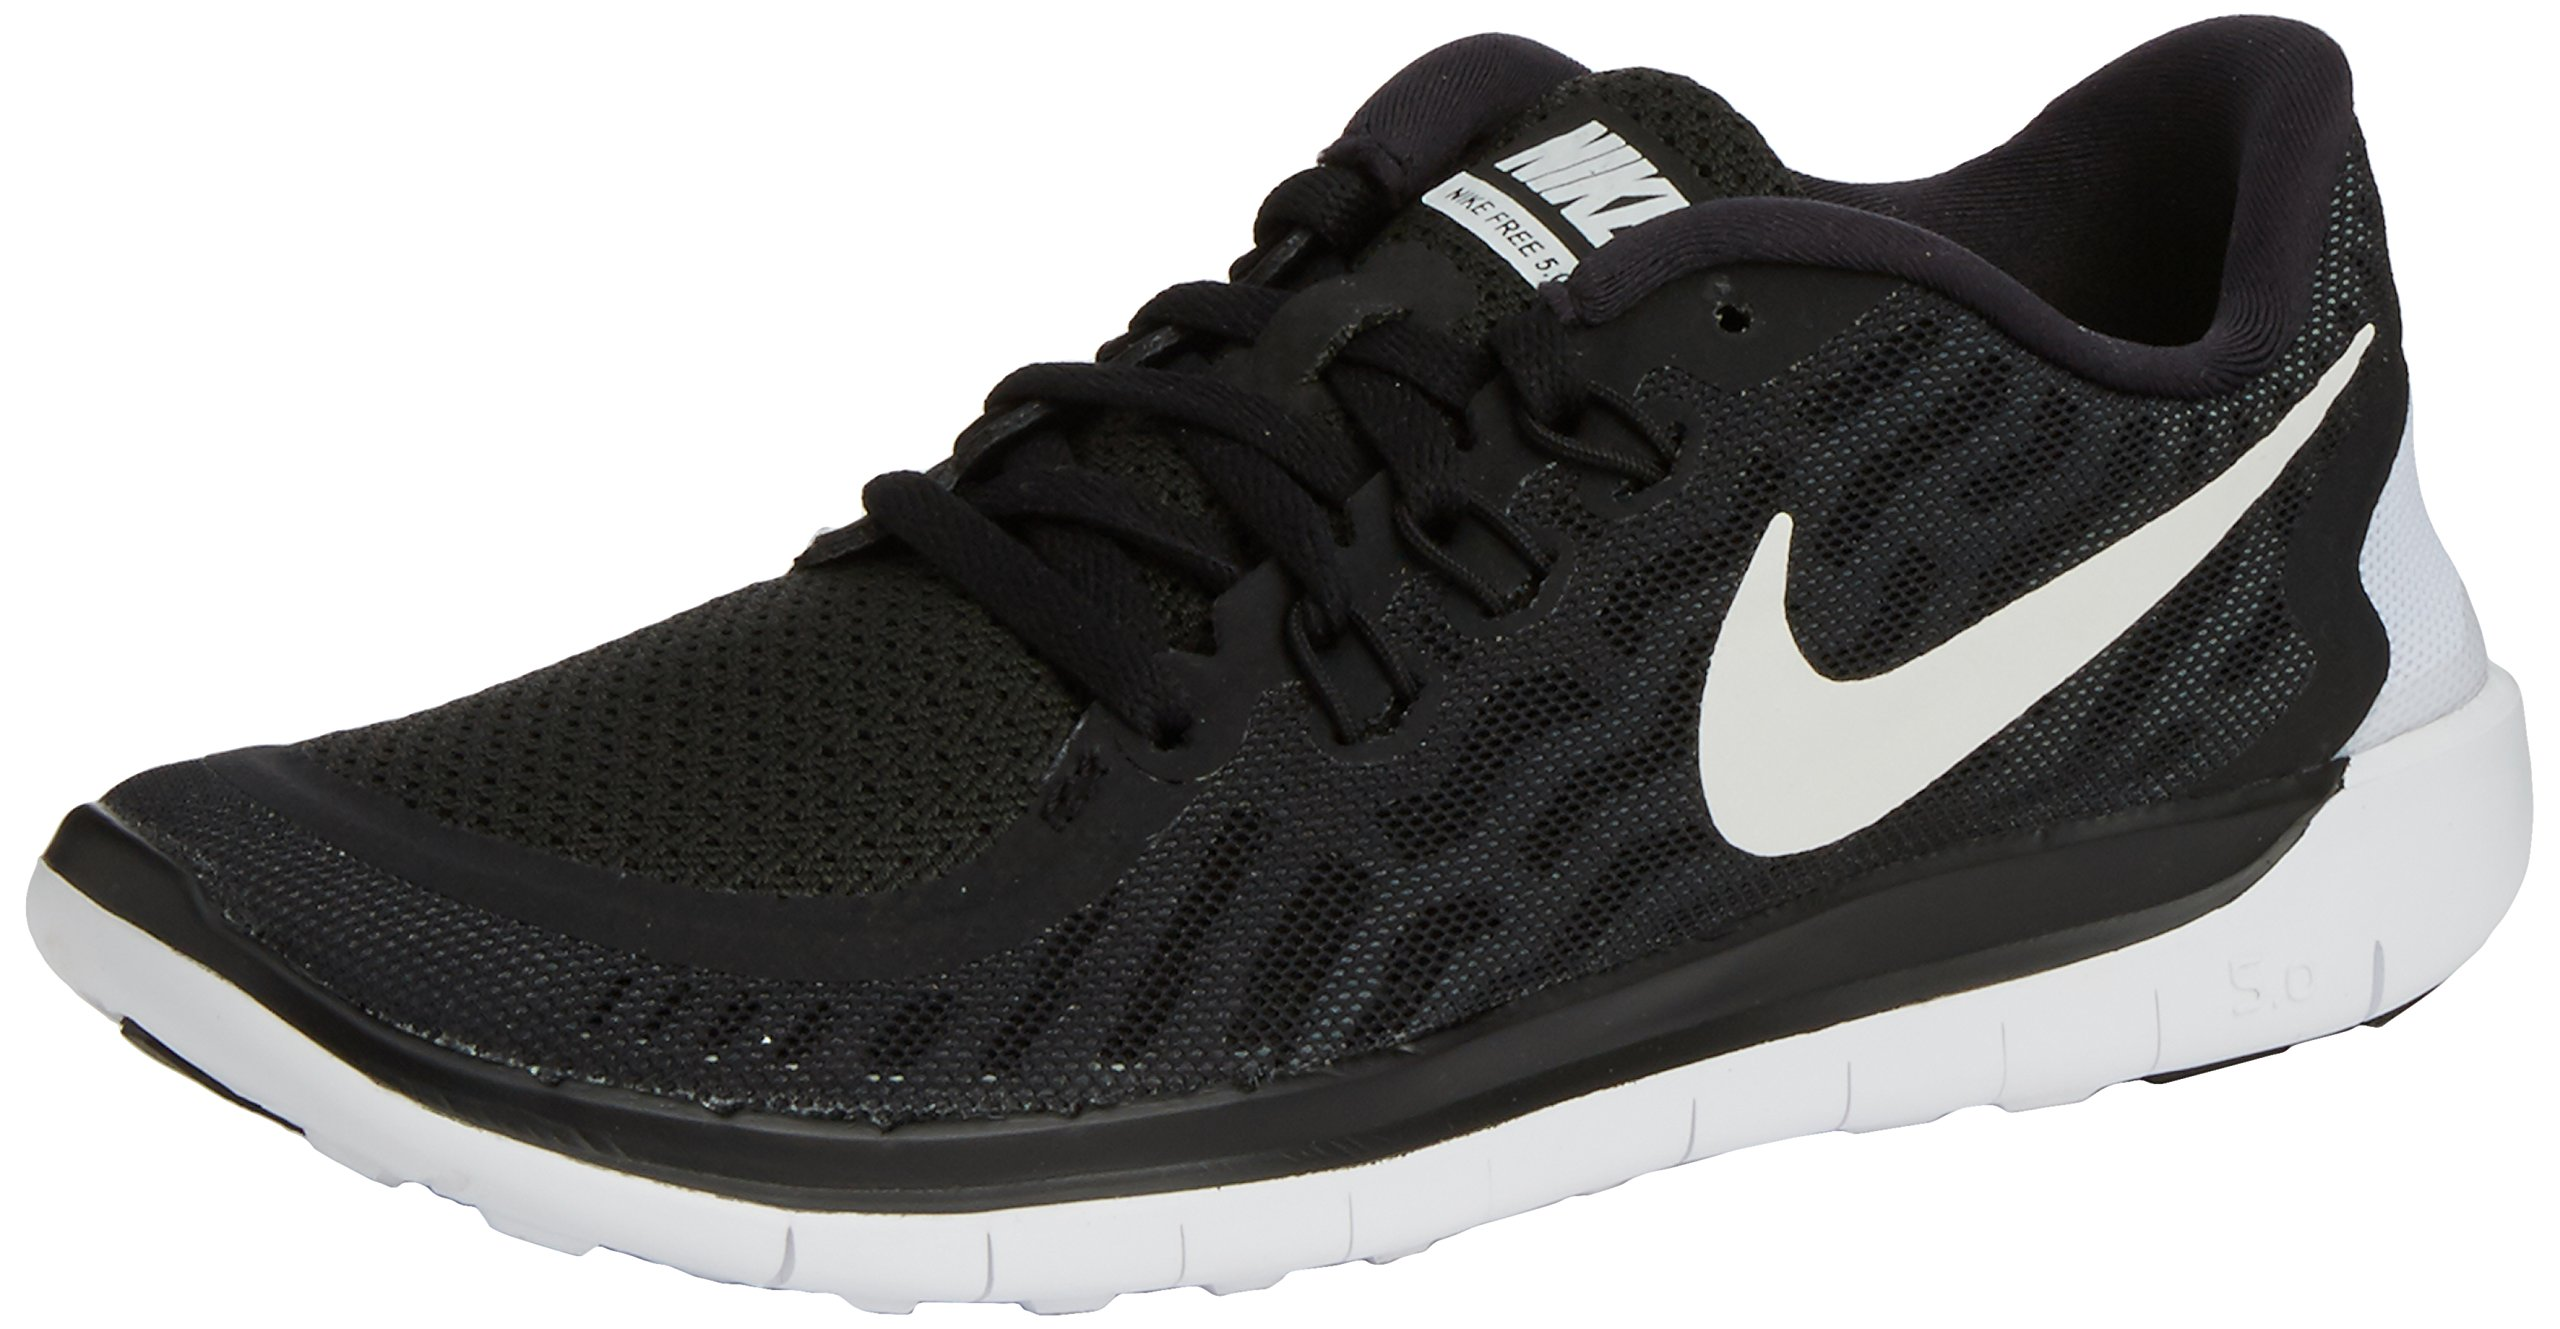 Boy's Nike Free 5.0 Running Shoe (GS) Black/Grey/White Size 7 M US by NIKE